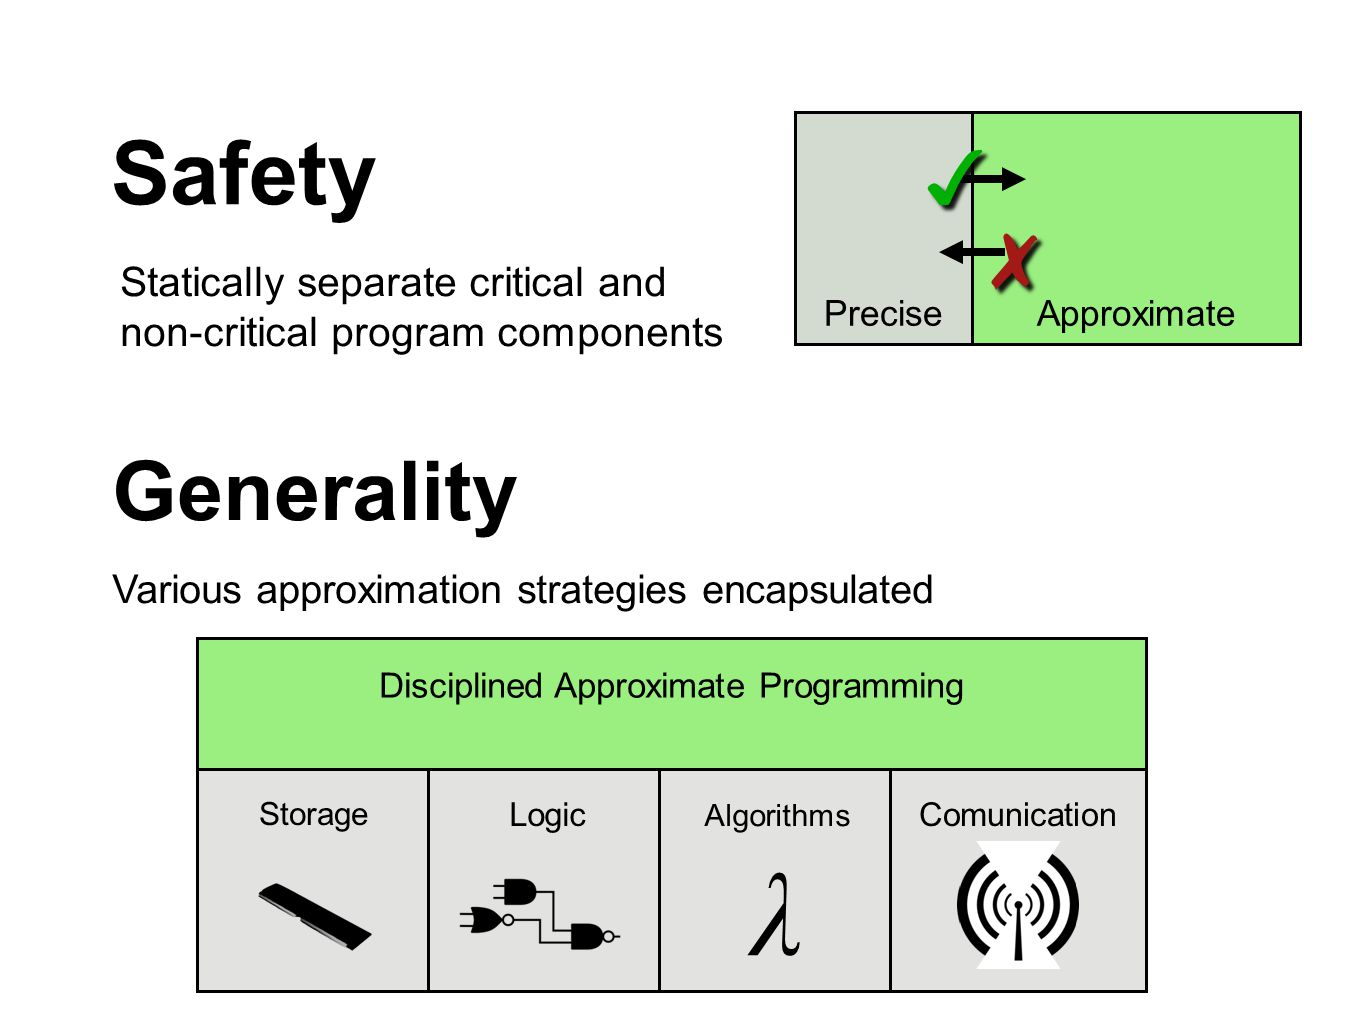 Safety Statically separate critical and non-critical program components PreciseApproximate ✗ ✗ ✓ ✓ Generality Various approximation strategies encapsulated Storage Logic Disciplined Approximate Programming Algorithms λ Comunication